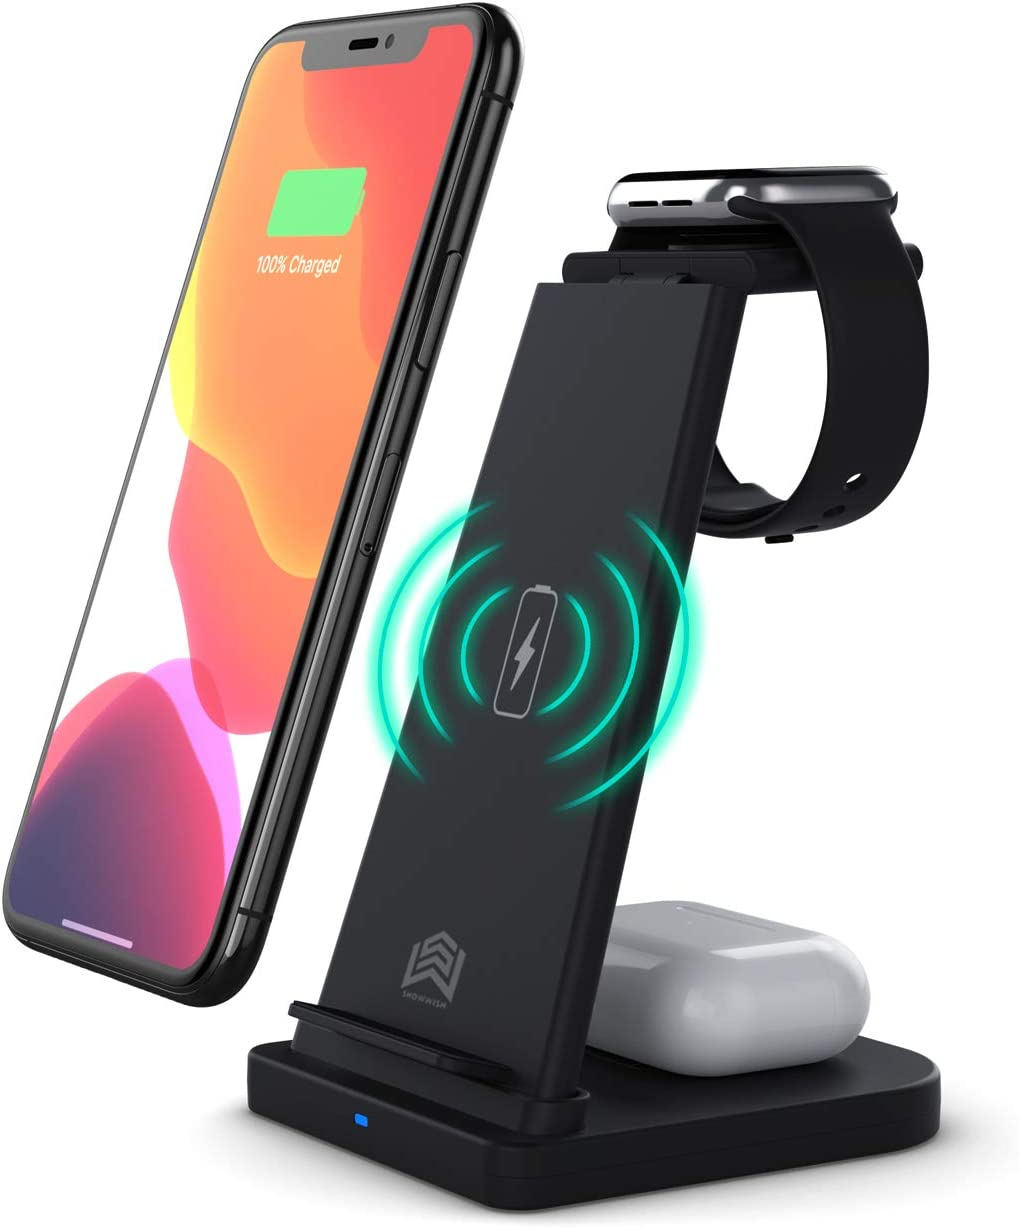 UCOS Wireless Charger,3 in 1 Wireless Charging Station for iWatch Apple Watch S6/5/4/3/2 AirPods Pro/2,Qi-Certified Fast Charging Stand Dock Compatible with iPhone 11/Pro Max/X/XS/XR/8/8 Plus